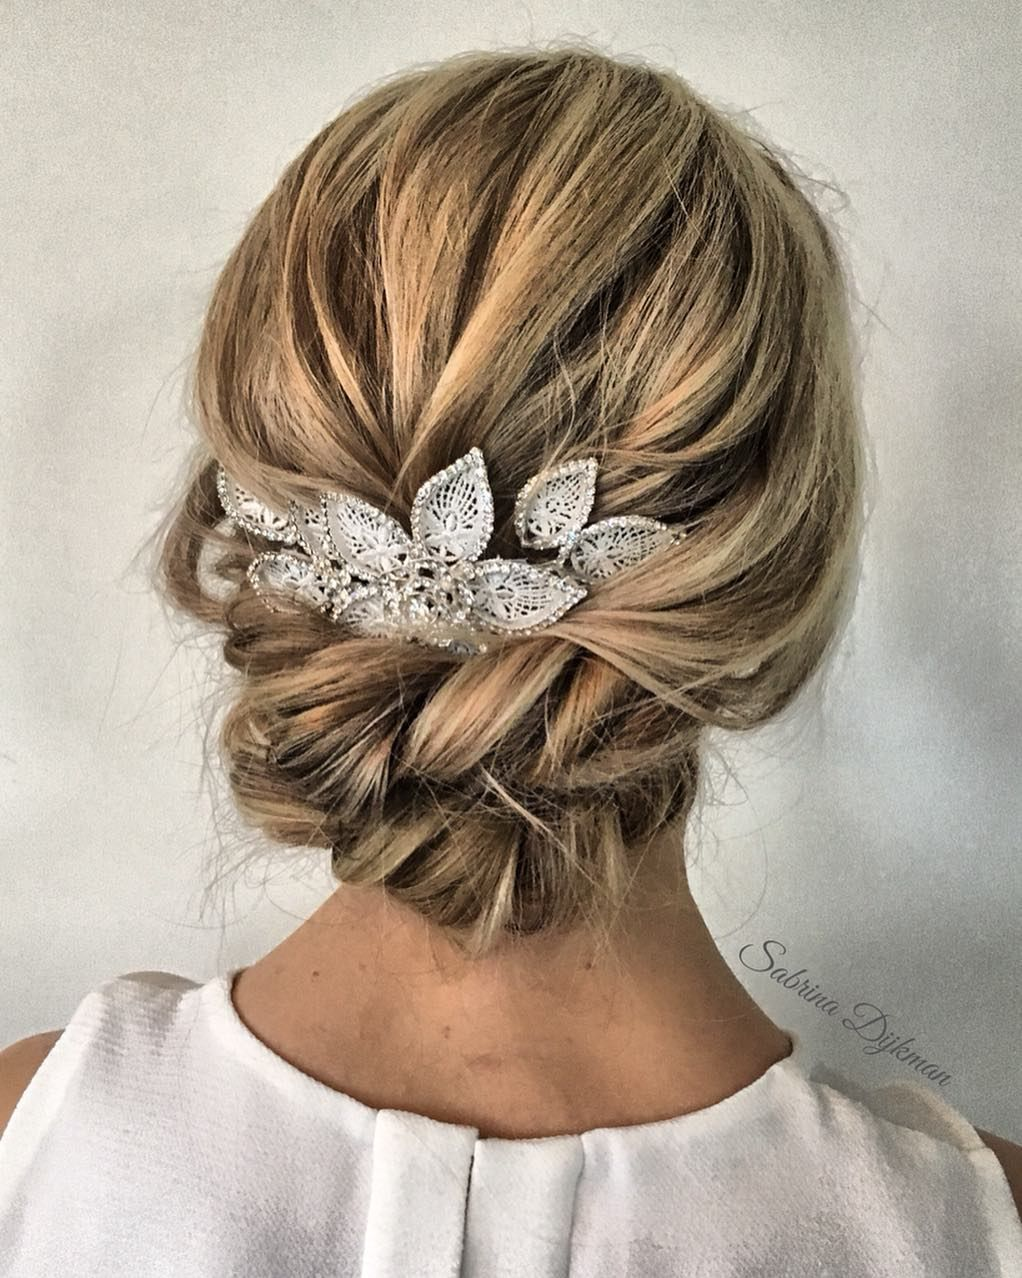 55 amazing updo hairstyle with the wow factor - fabmood | wedding